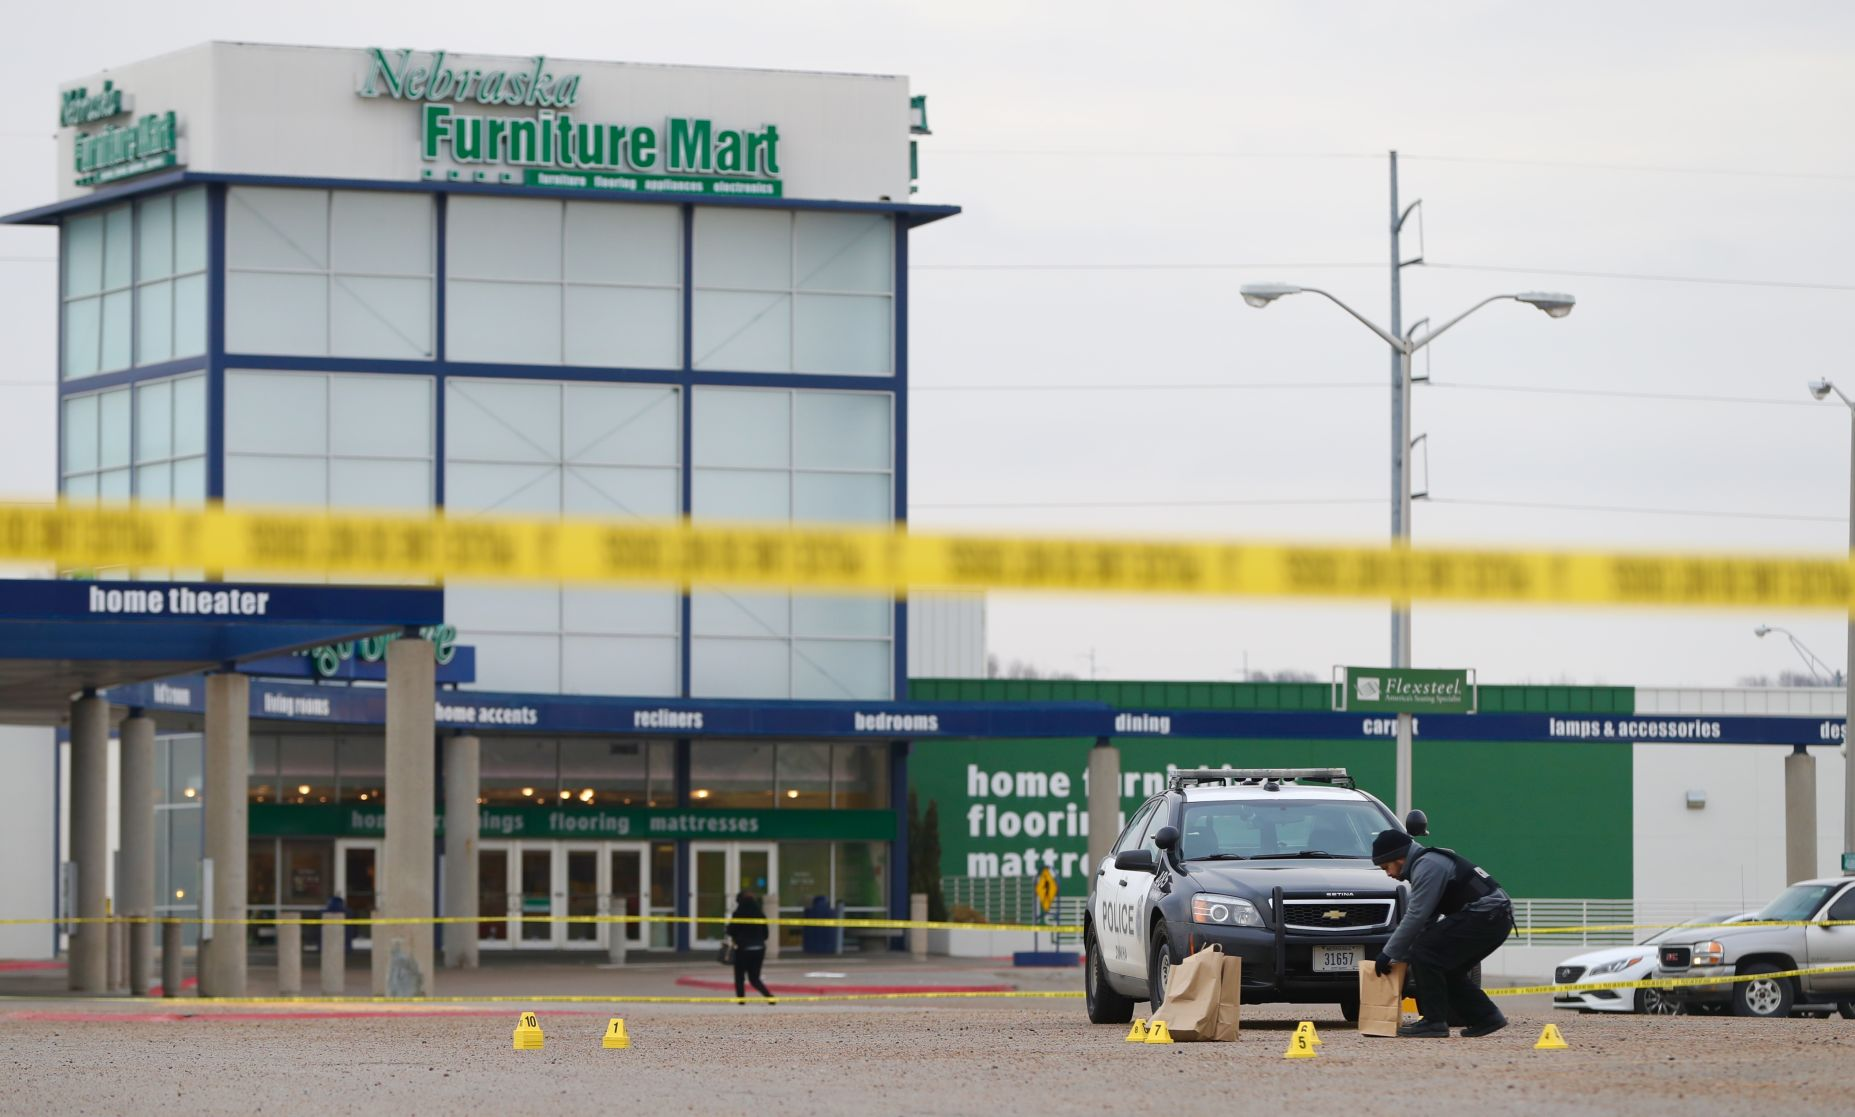 Nebraska Furniture Mart Parking Lot Shooting